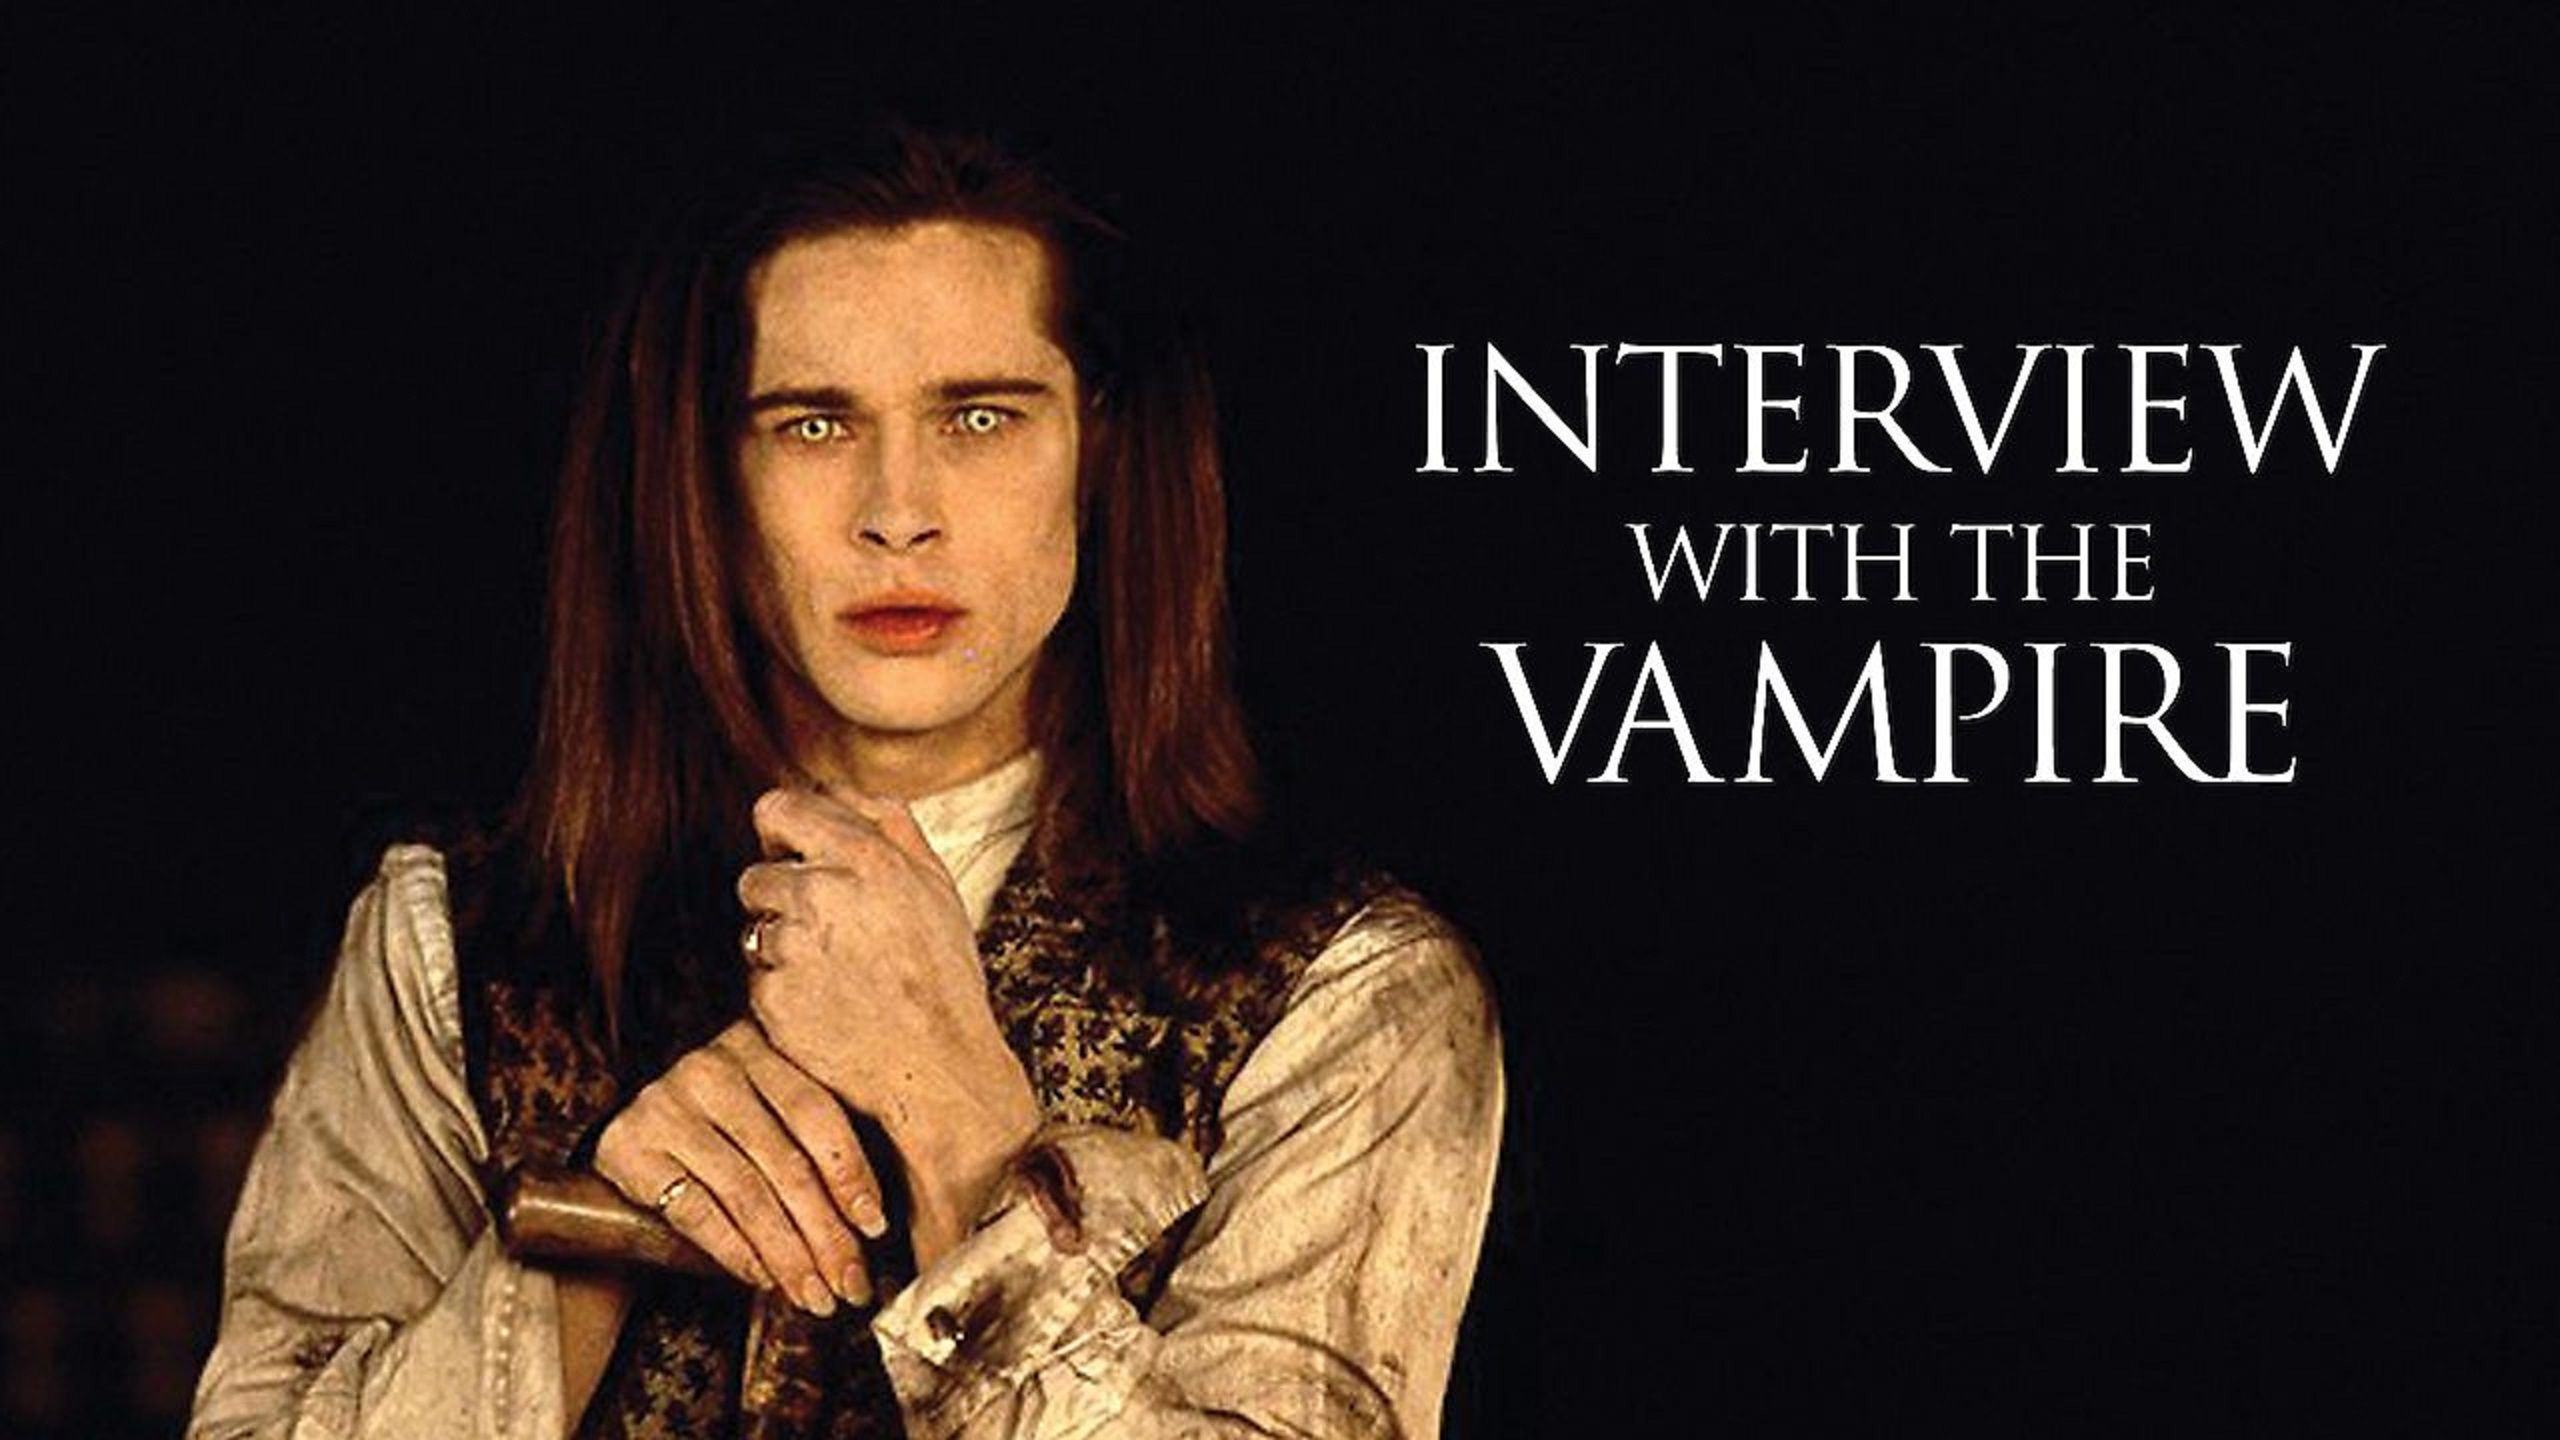 Interview with the Vampire (1994) horror movie